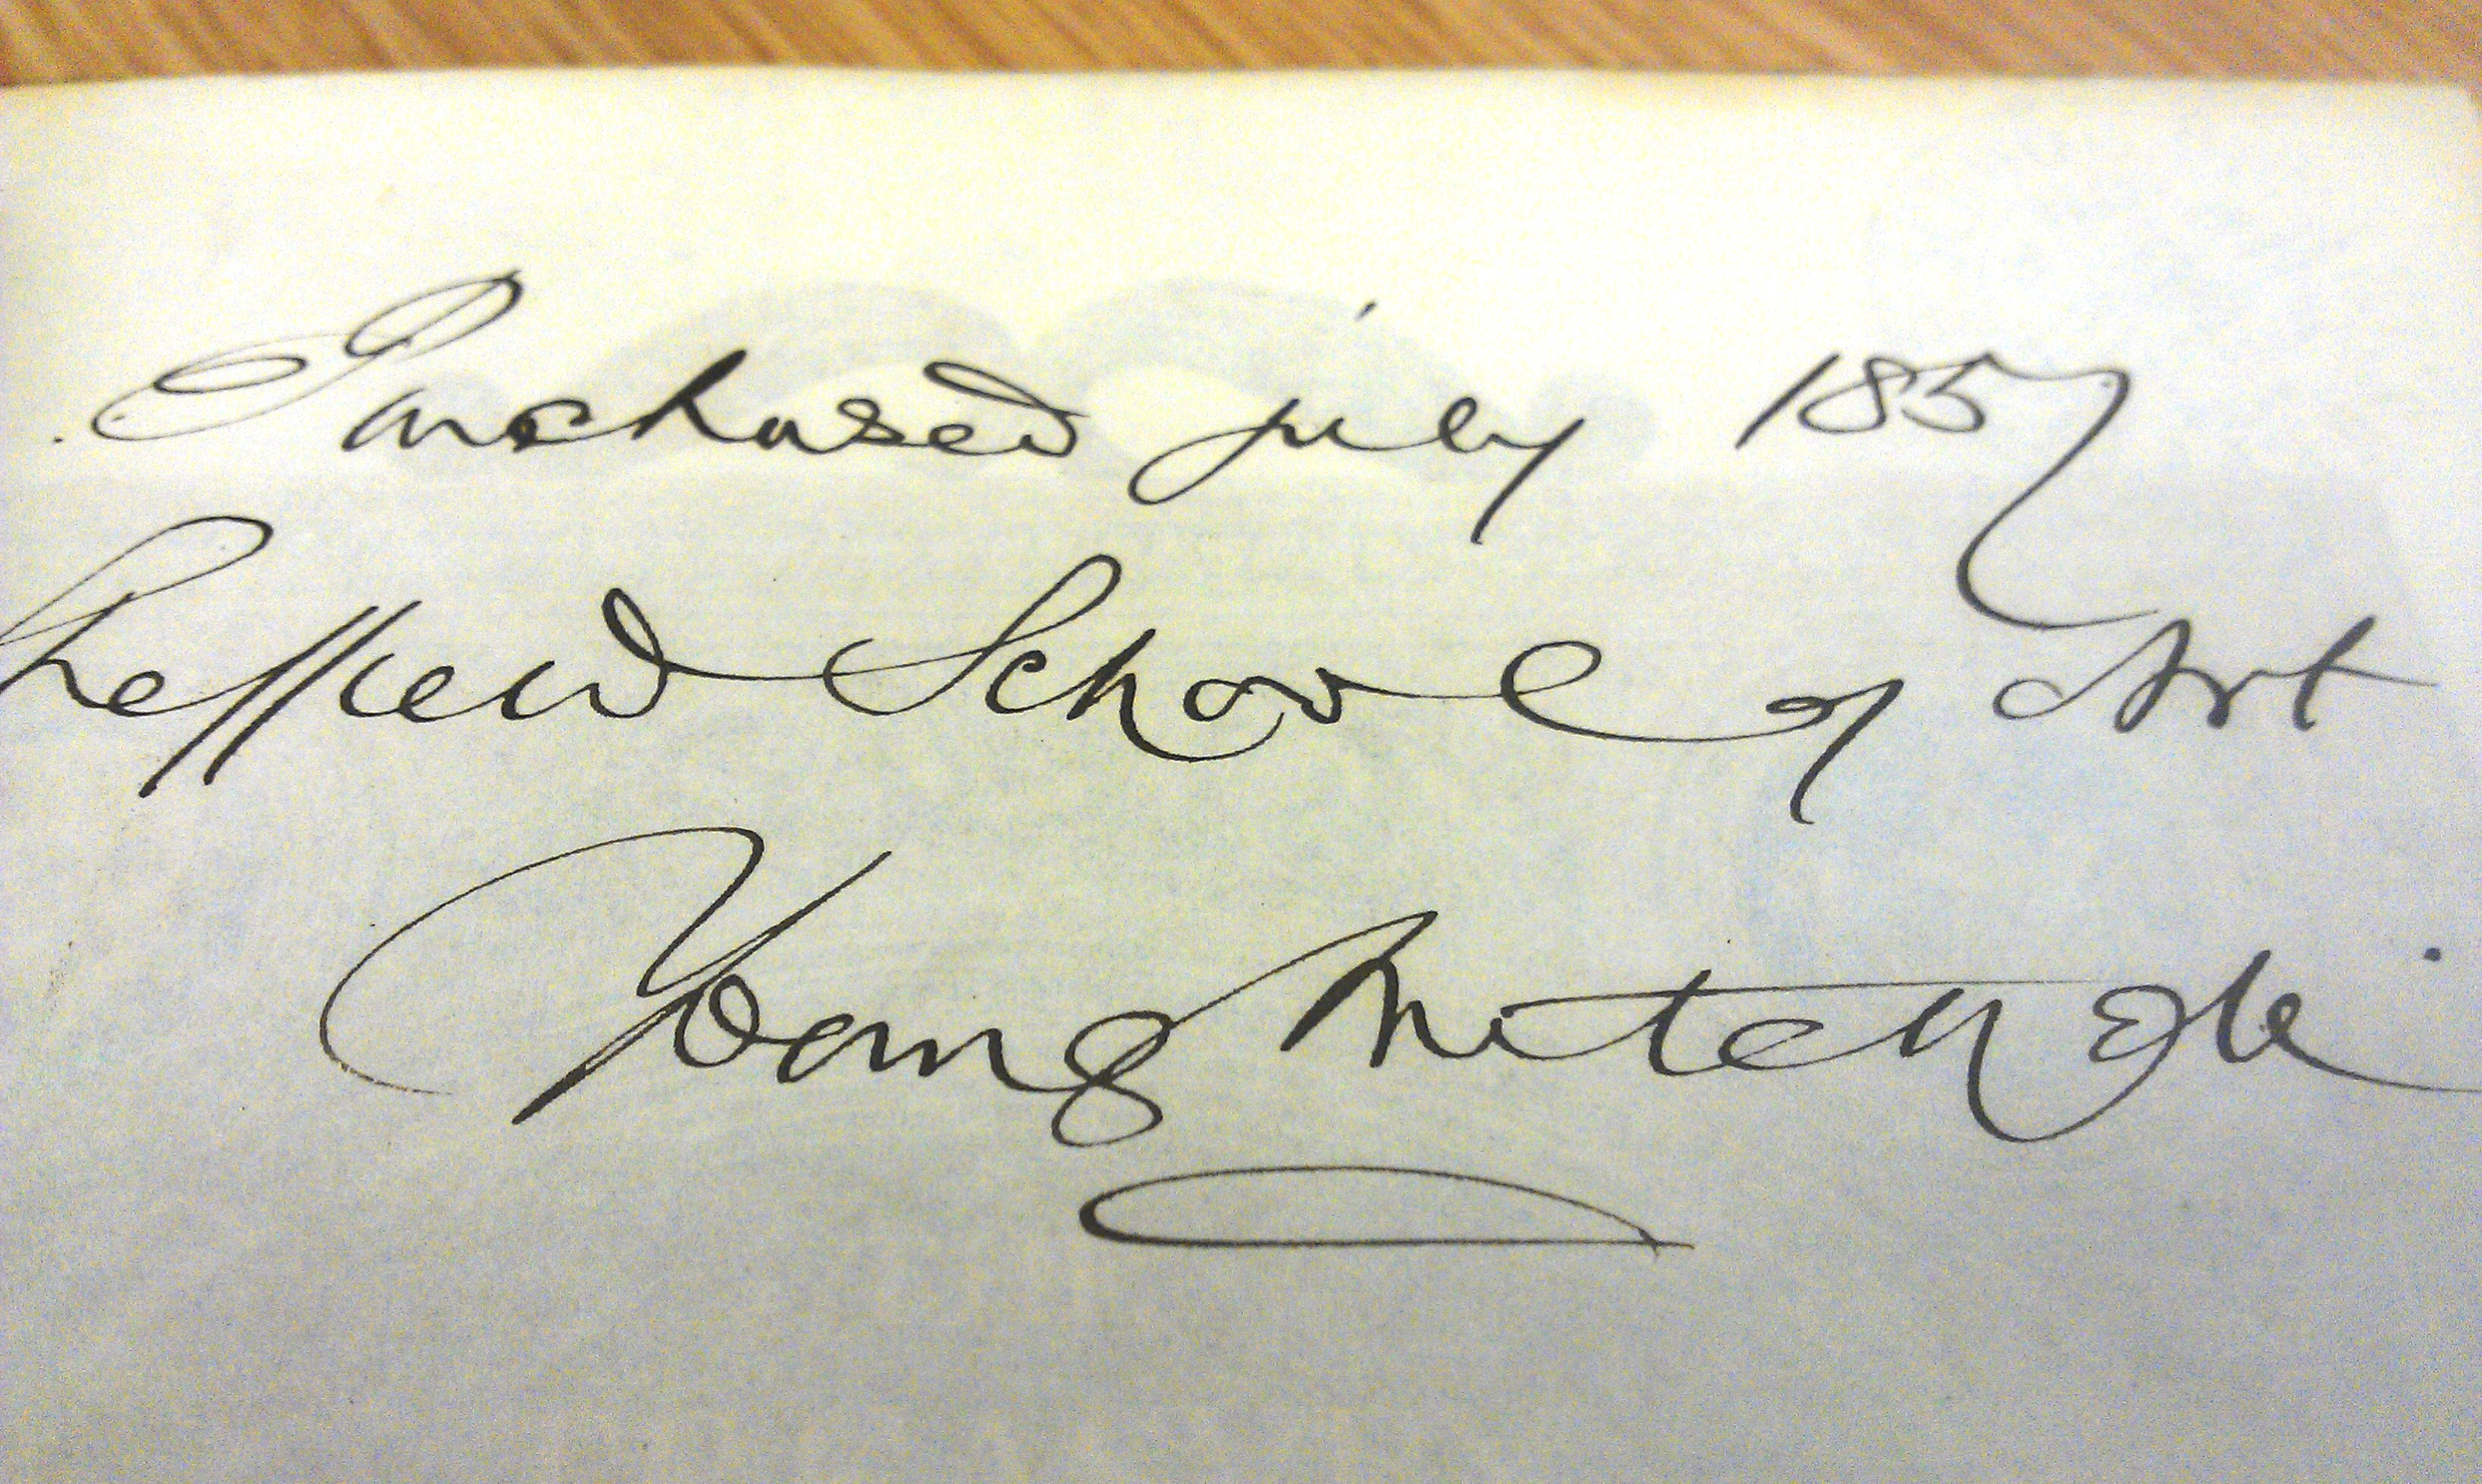 Young Mitchells signature in The Treasury of ornamental art by J.C. Robinson